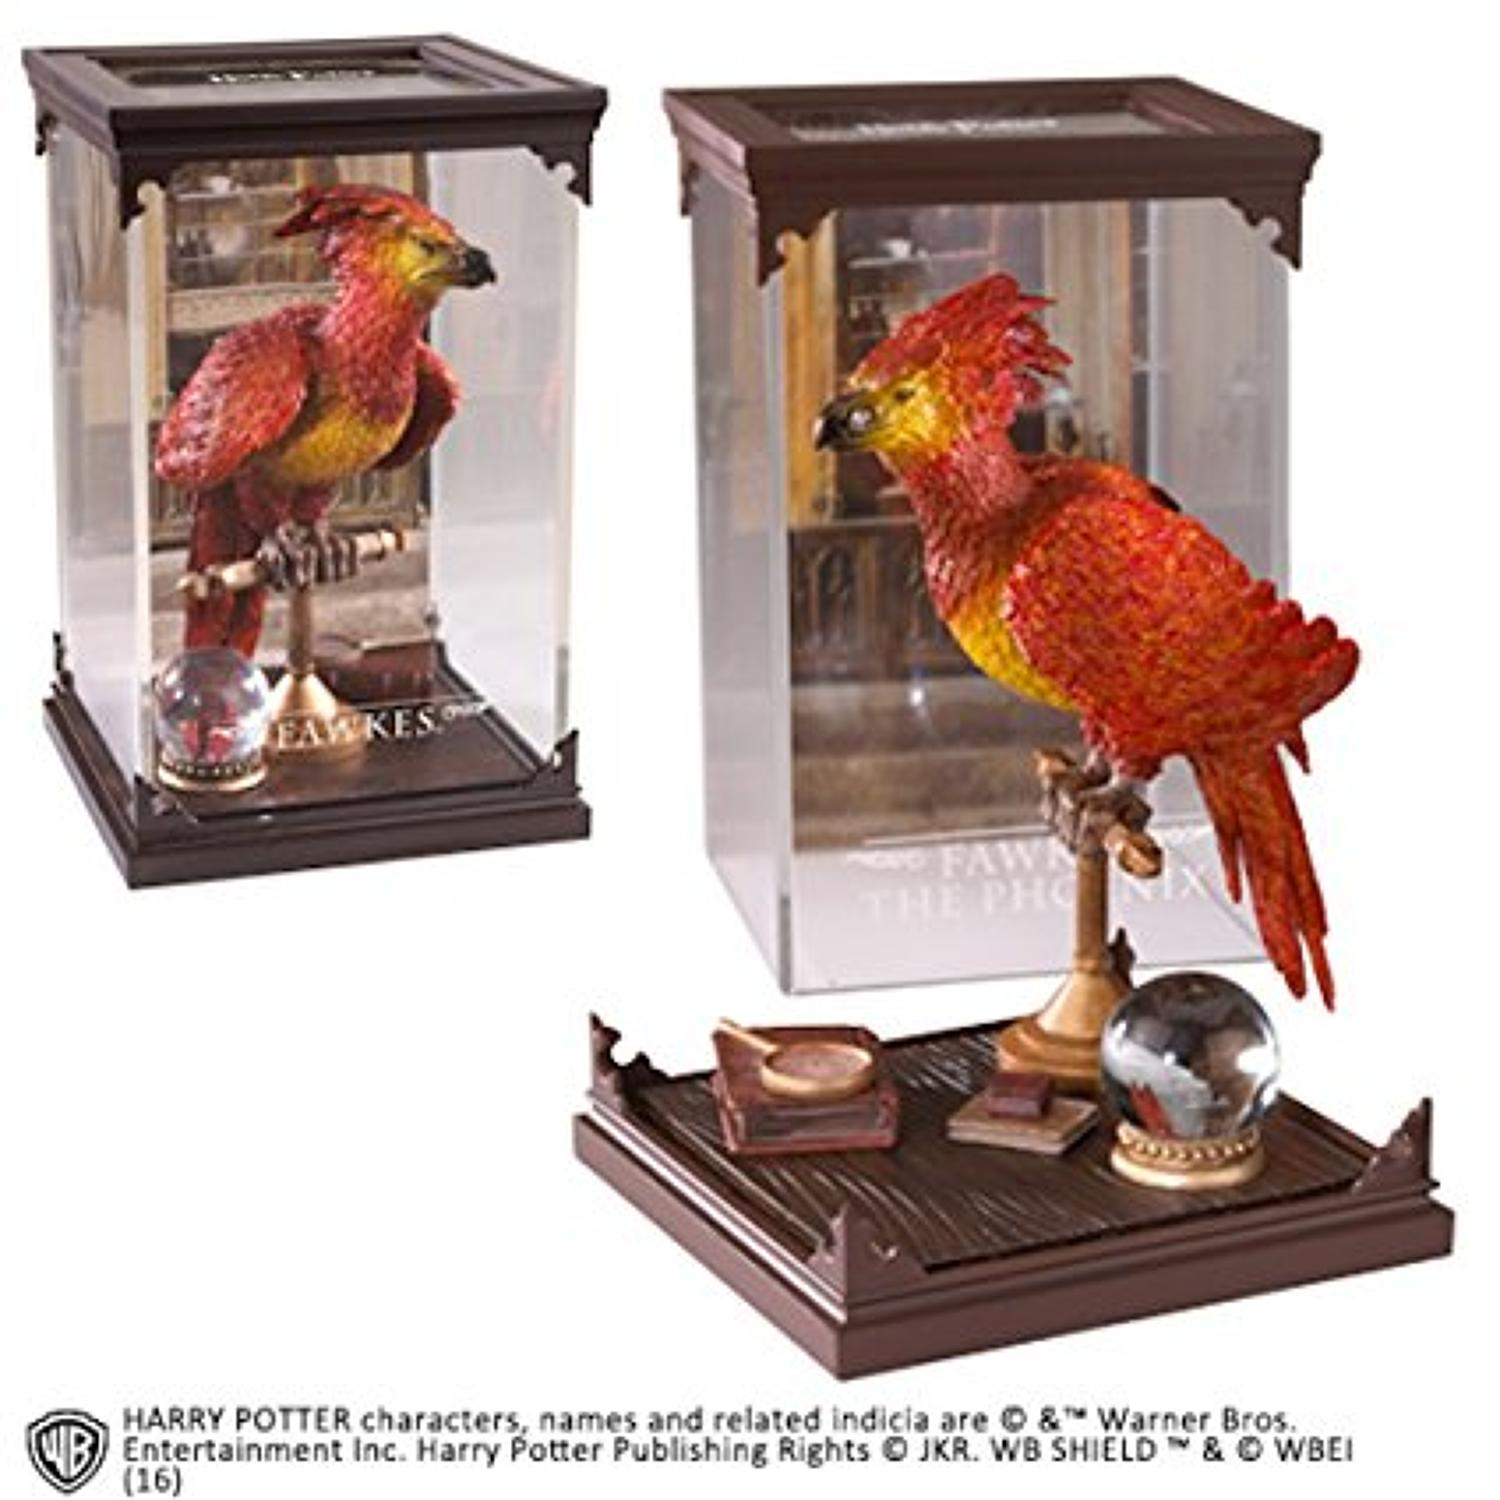 Harry Potter - Fawkes the Phoenix Magical Creature